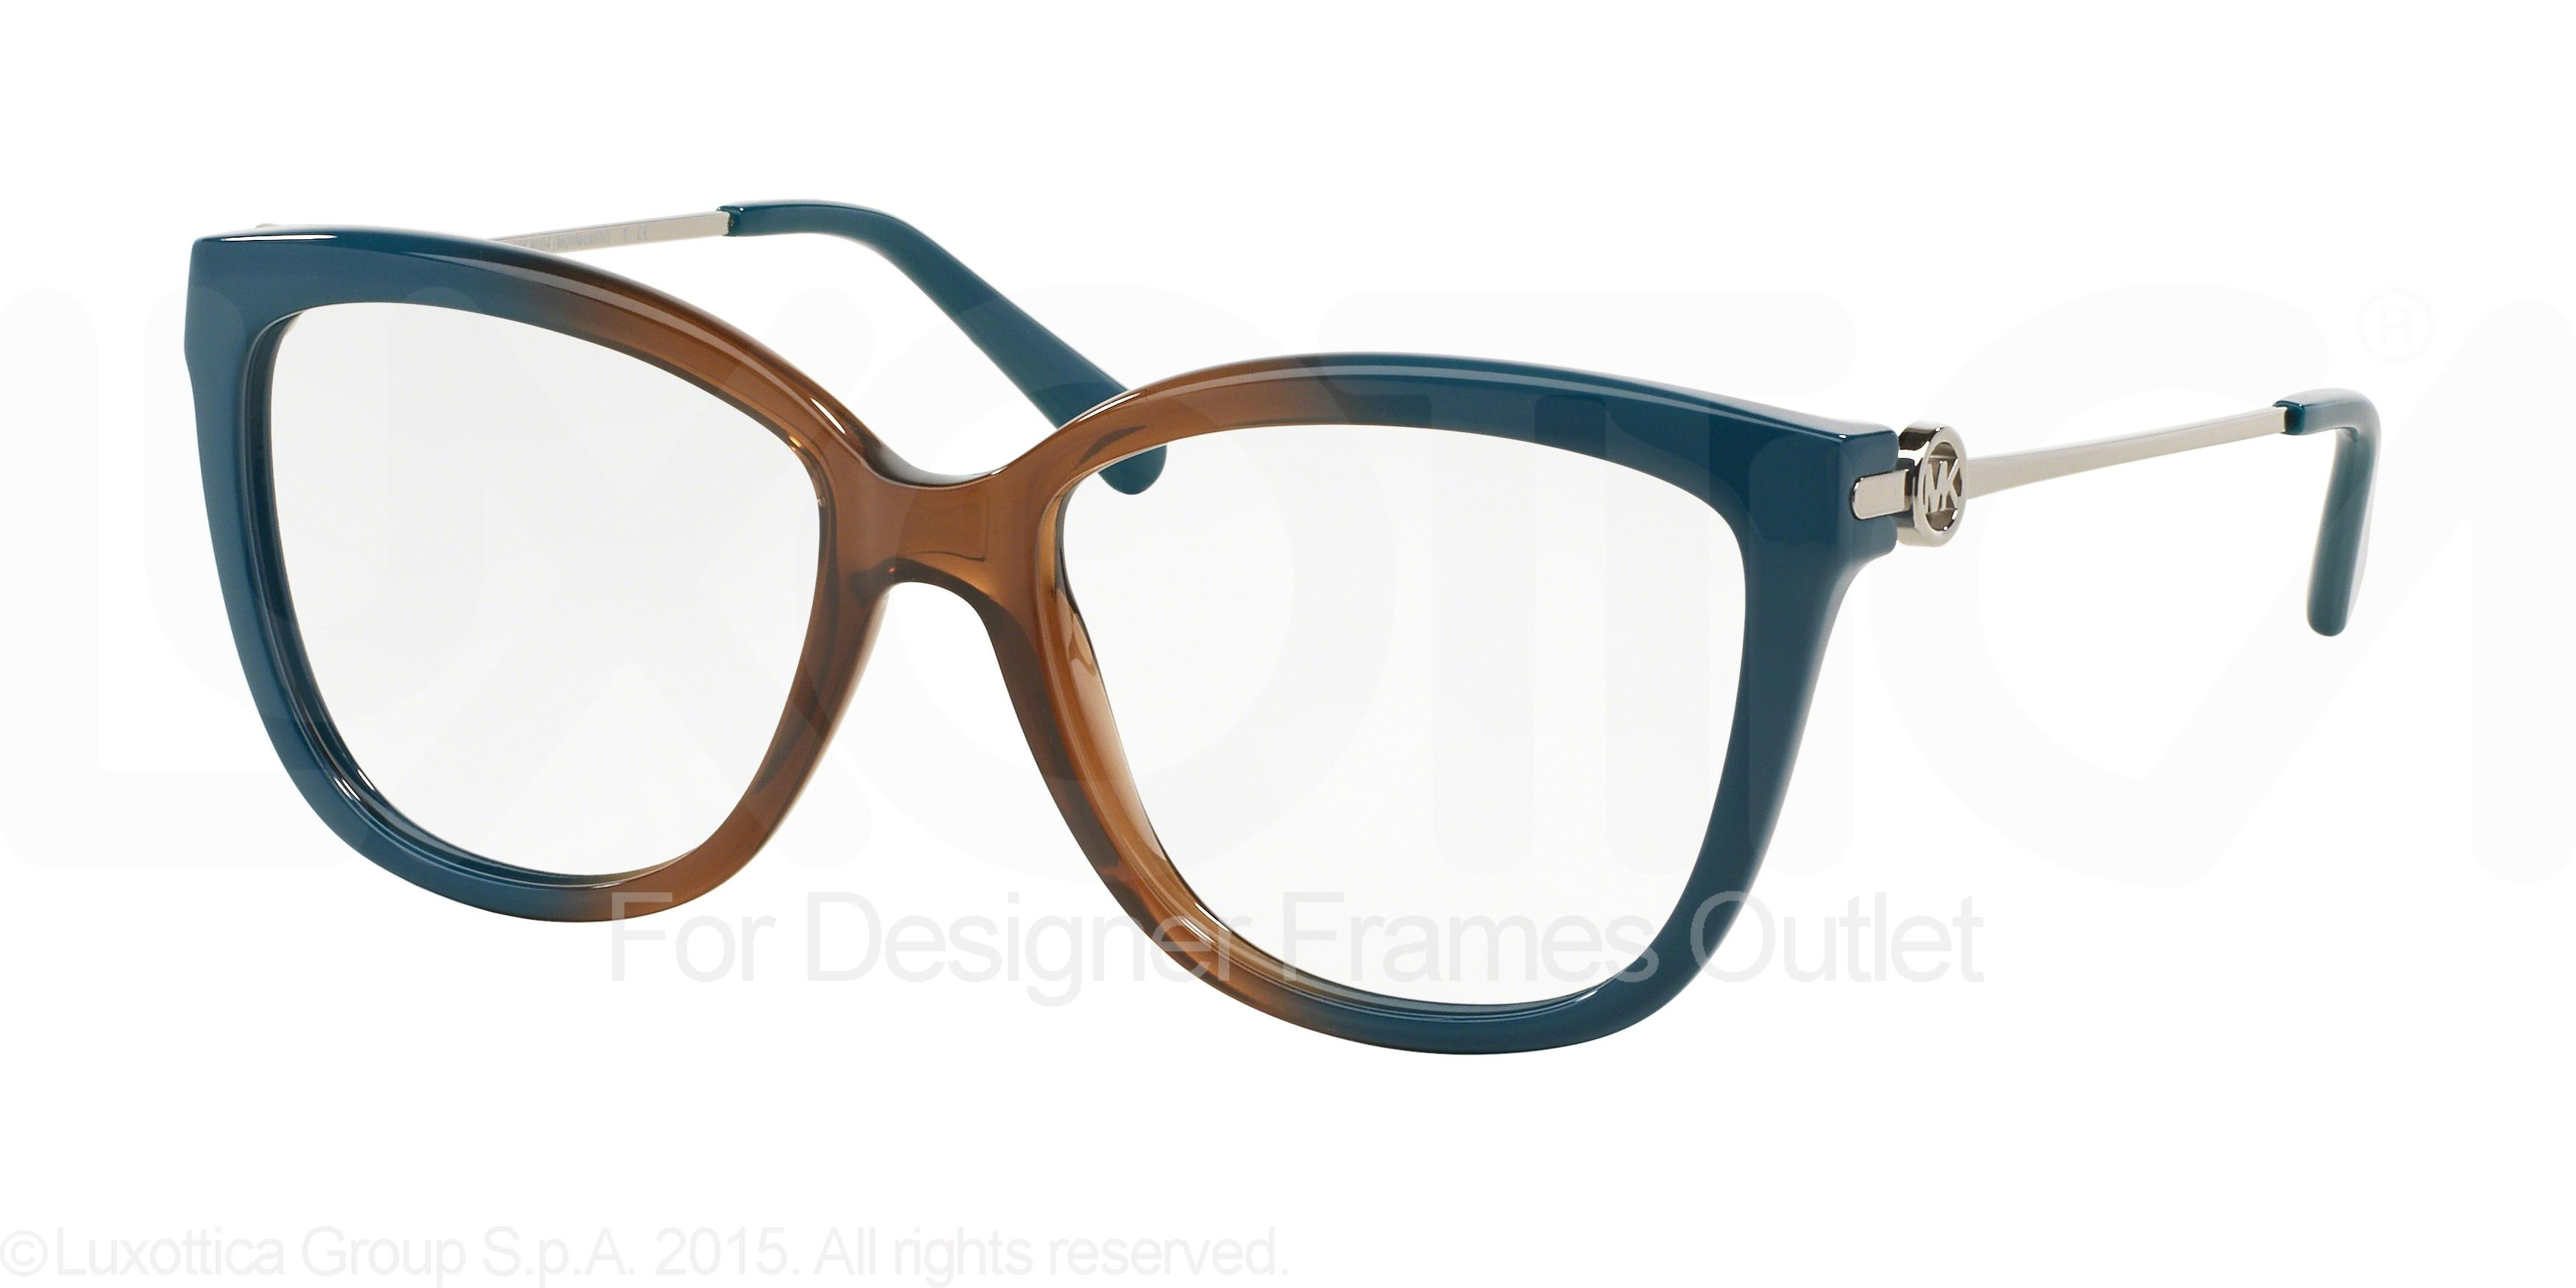 770278b770 Designer Eyeglasses Outlet